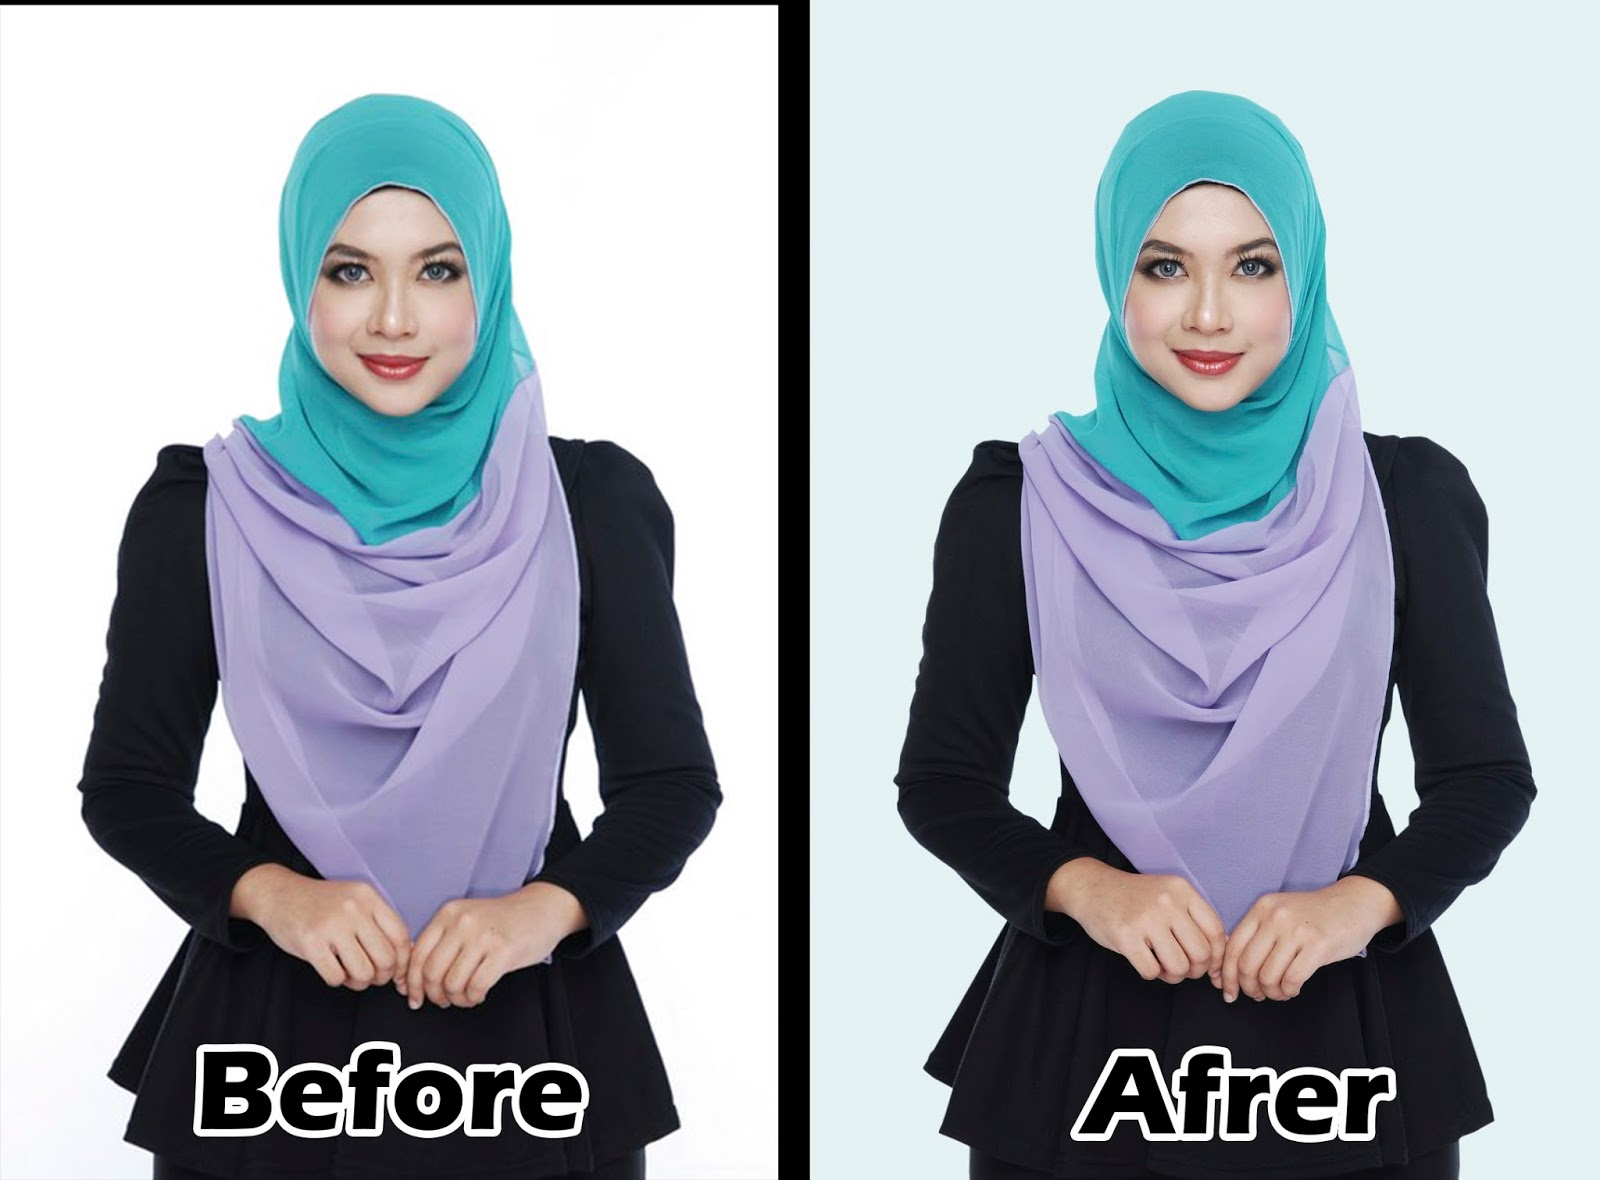 Background image remover - How To Background Remover Simple Extra Fast With Ploygonal Lasso Tools